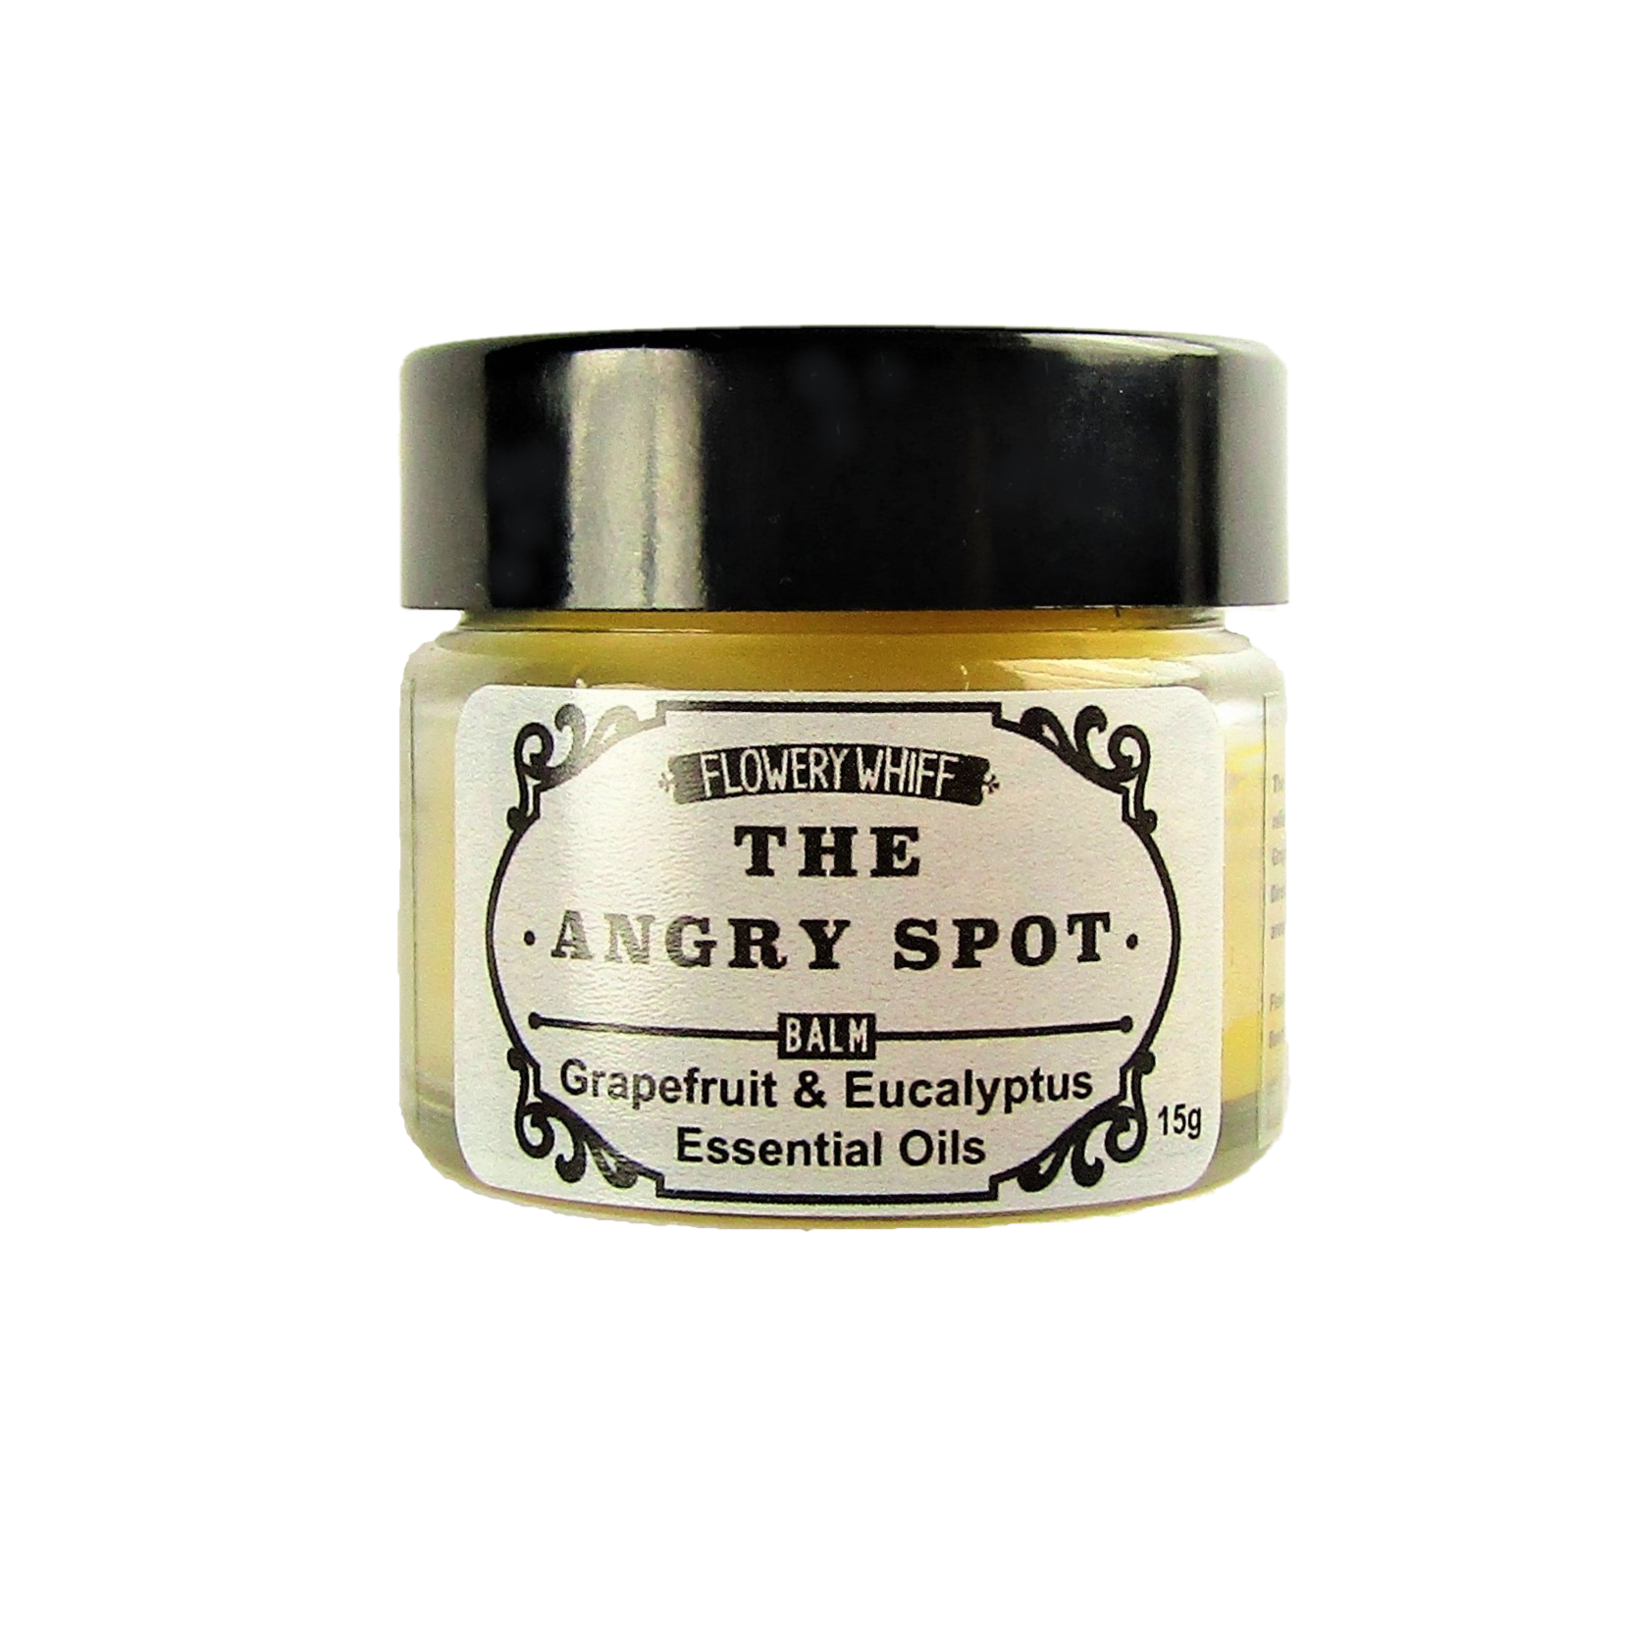 The Angry Spot Soothing Balm